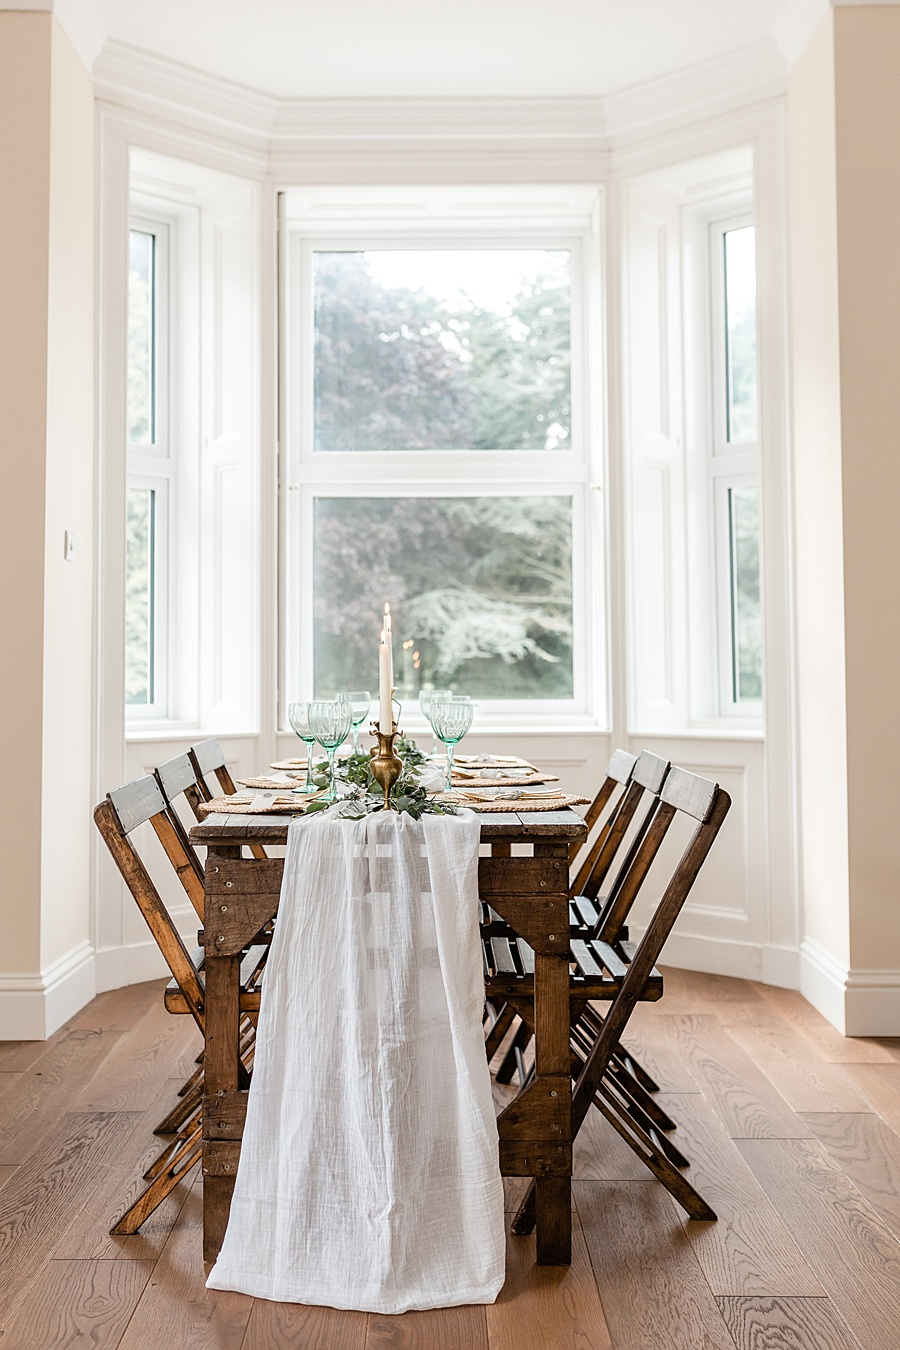 Neutral organic and minimal wedding style ideas from Kingsdown Rectory. Styling Your Wedding Your Way Images Kate Hennessey Photography (42)